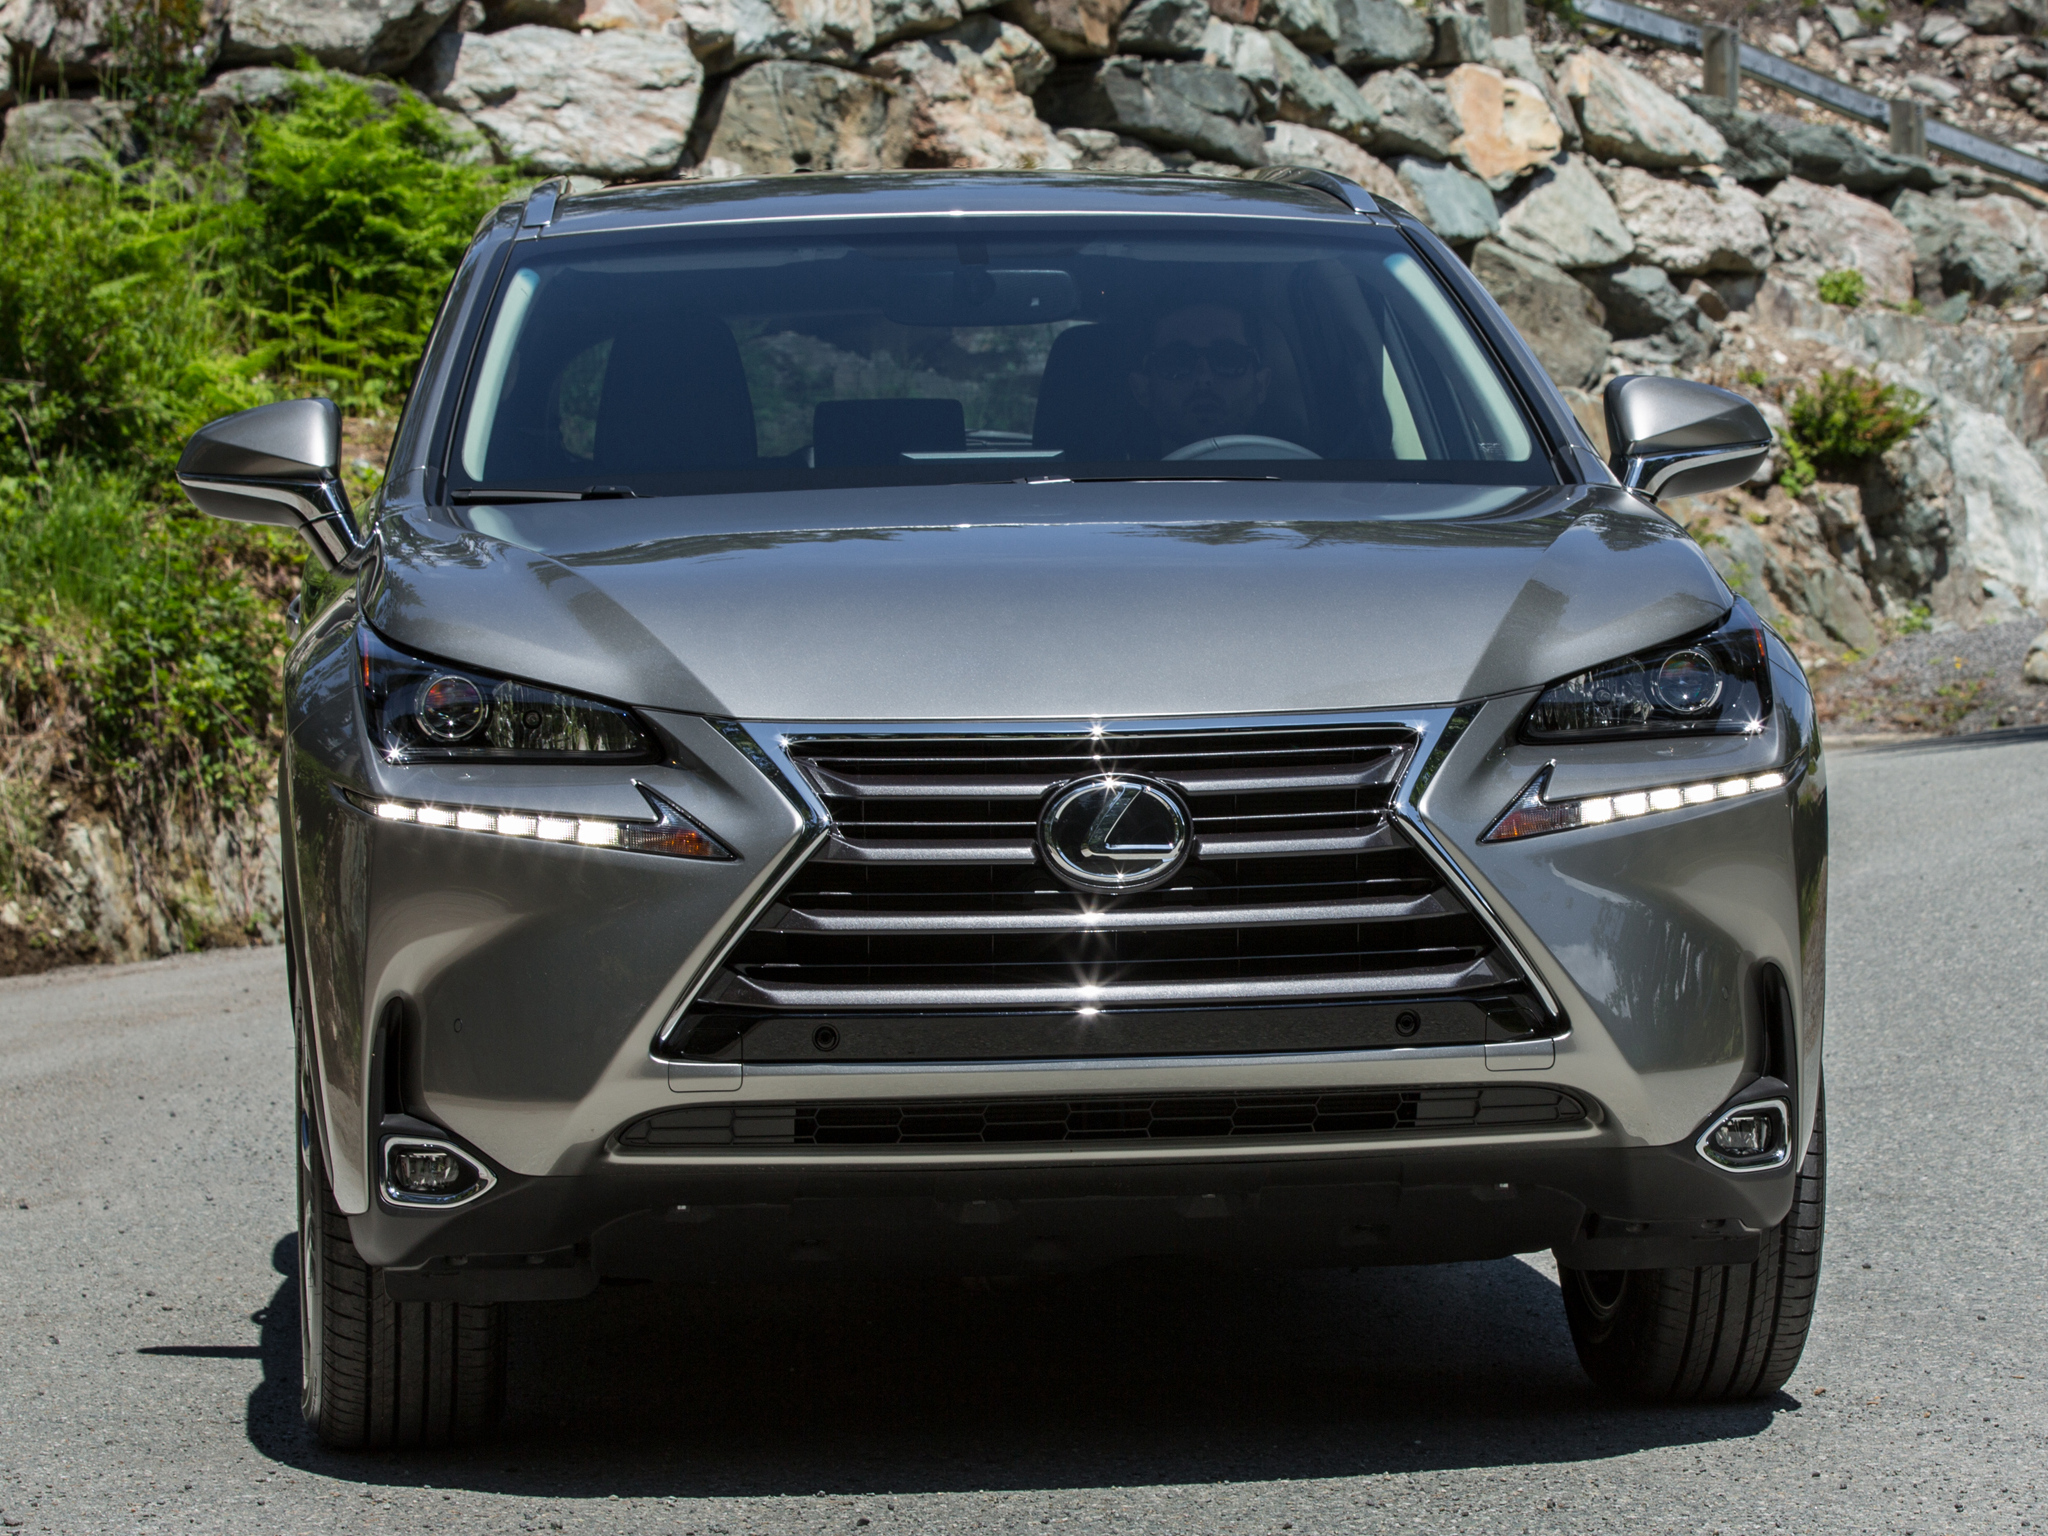 https://s1.cdn.autoevolution.com/images/news/2015-lexus-nx-reviewed-by-consumer-reports-video-84808_1.jpg